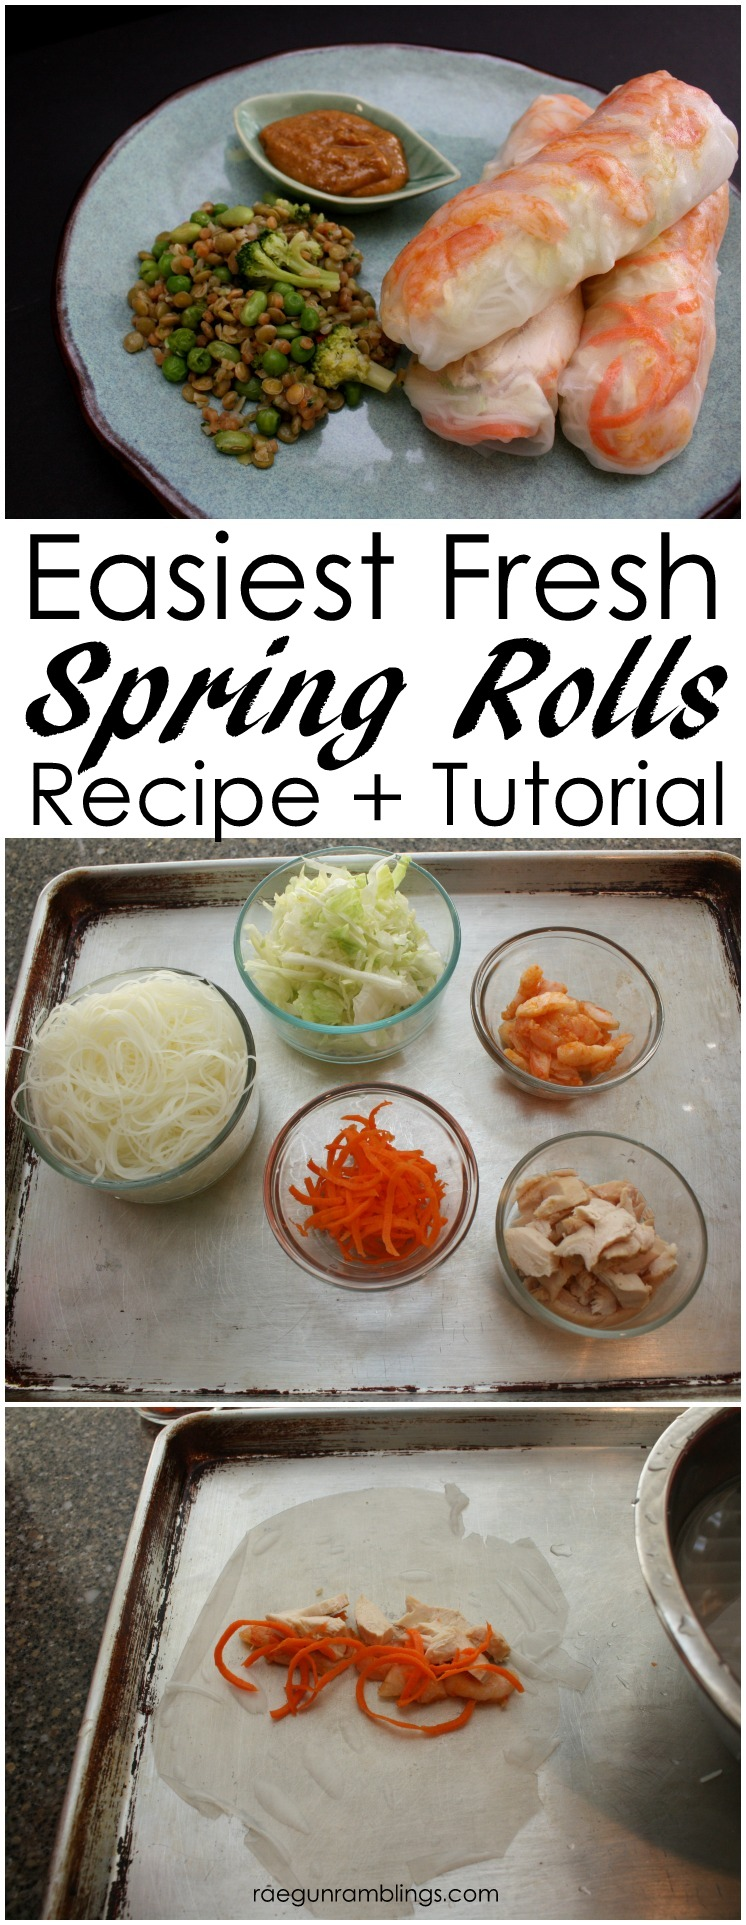 This Summer Roll recipe is so good. Super fast healthy meal idea full of veggies.